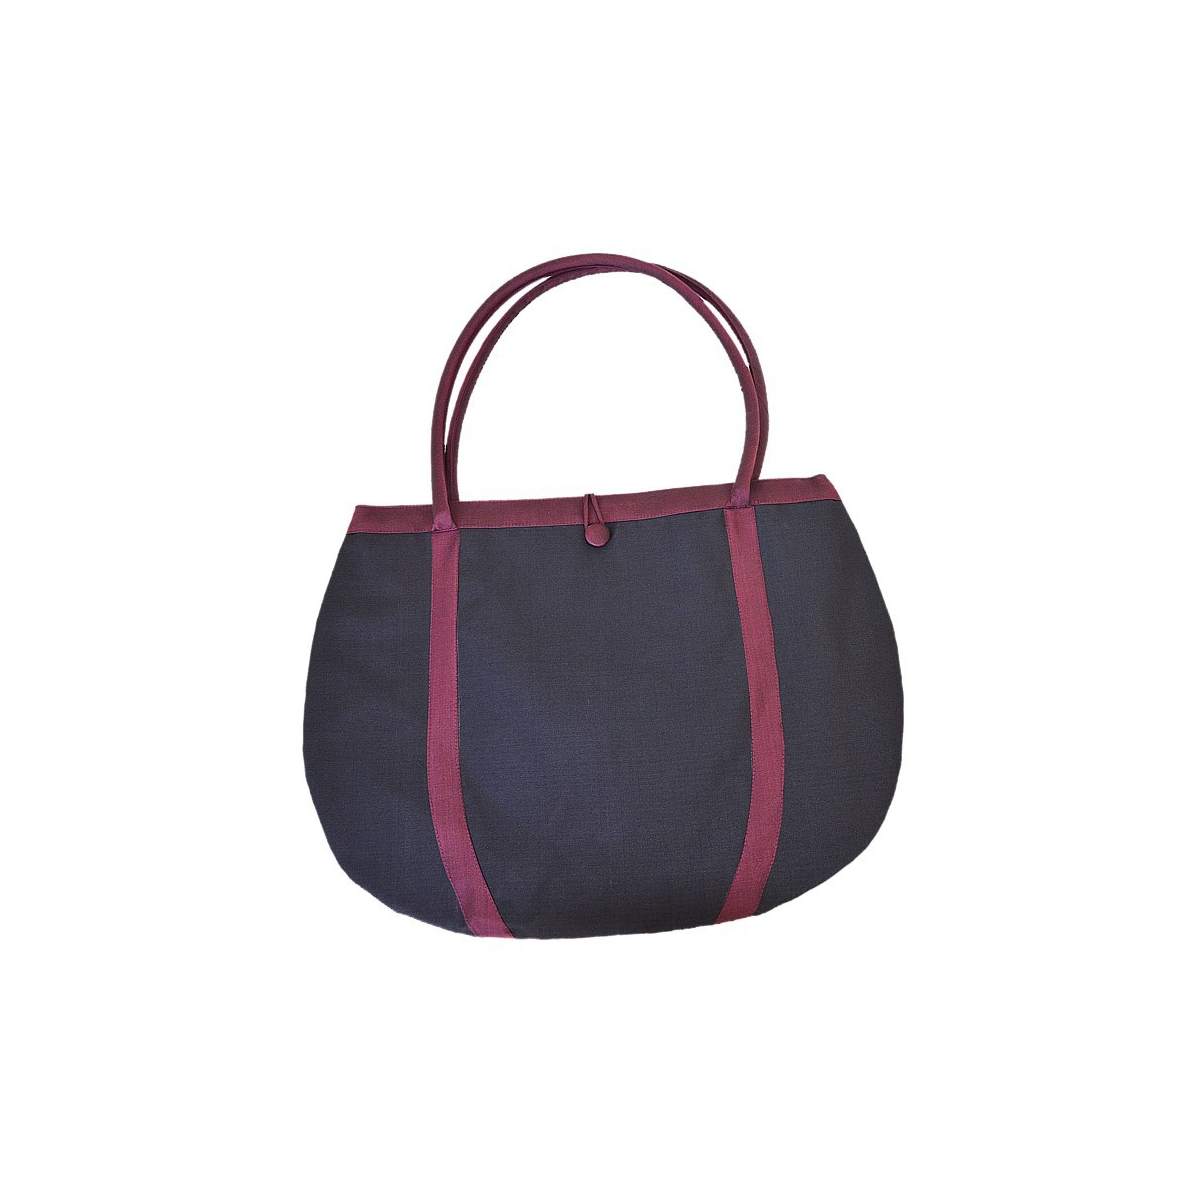 silk shopping bag in black and dark red, practical and light, vintage look, generous size